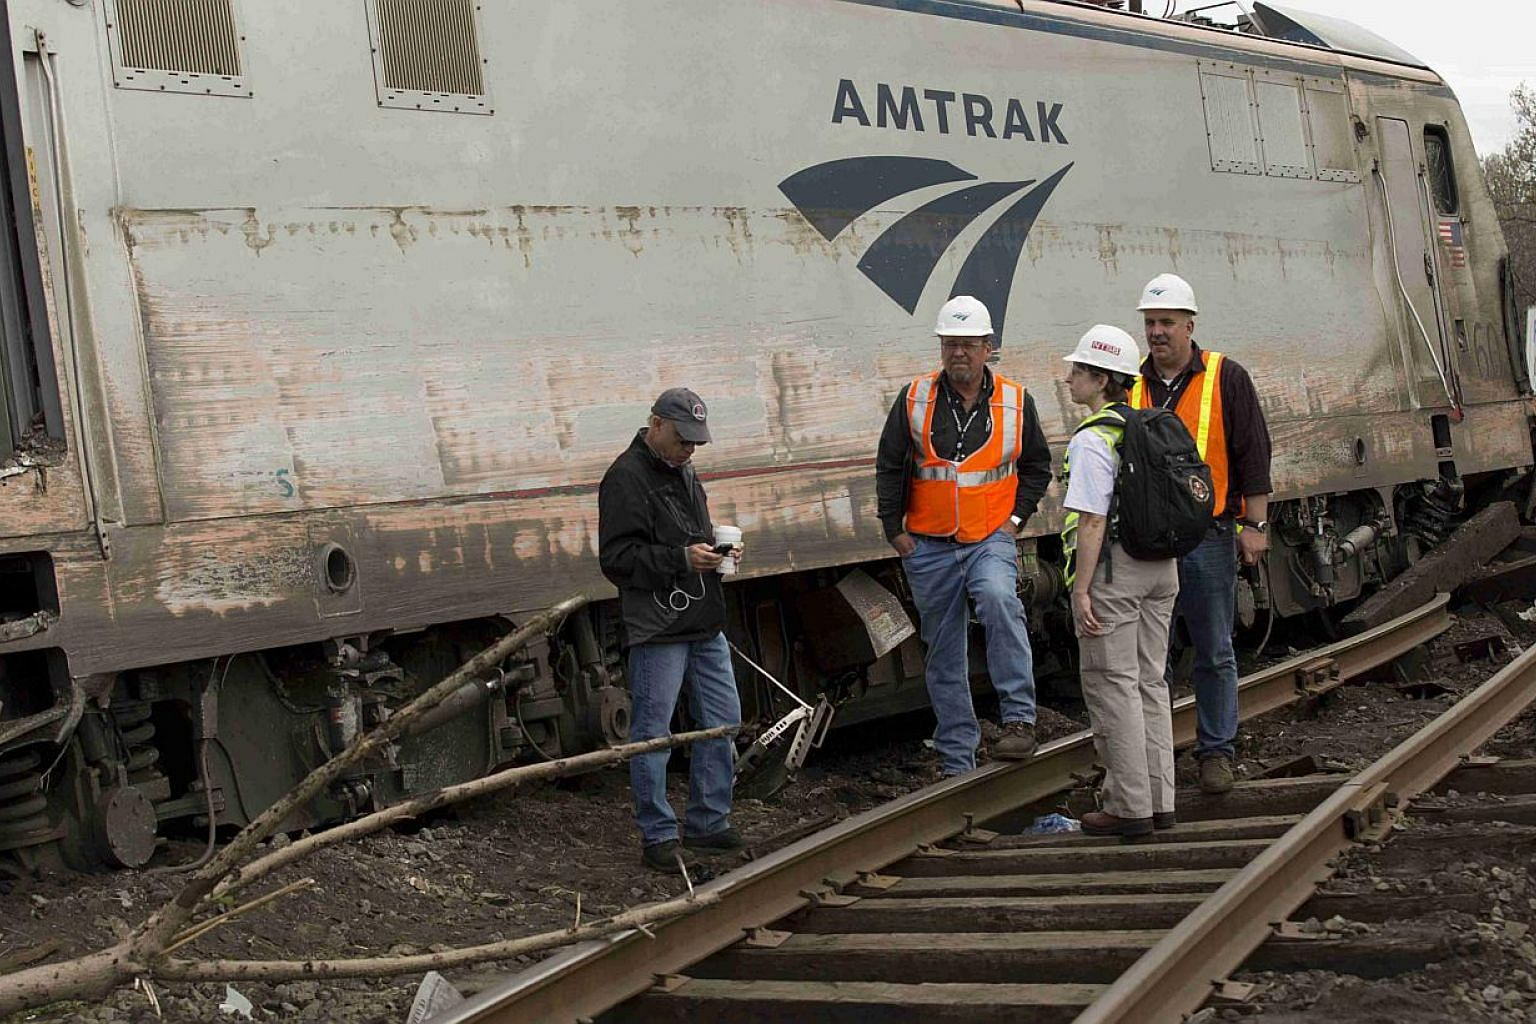 National Transportation Safety Board officials on the scene of the Amtrak derailment in Philadelphia on May 13, 2015. The train and a separate commuter train in the vicinity may have been hit by projectiles of some kind shortly before the wreck, a US